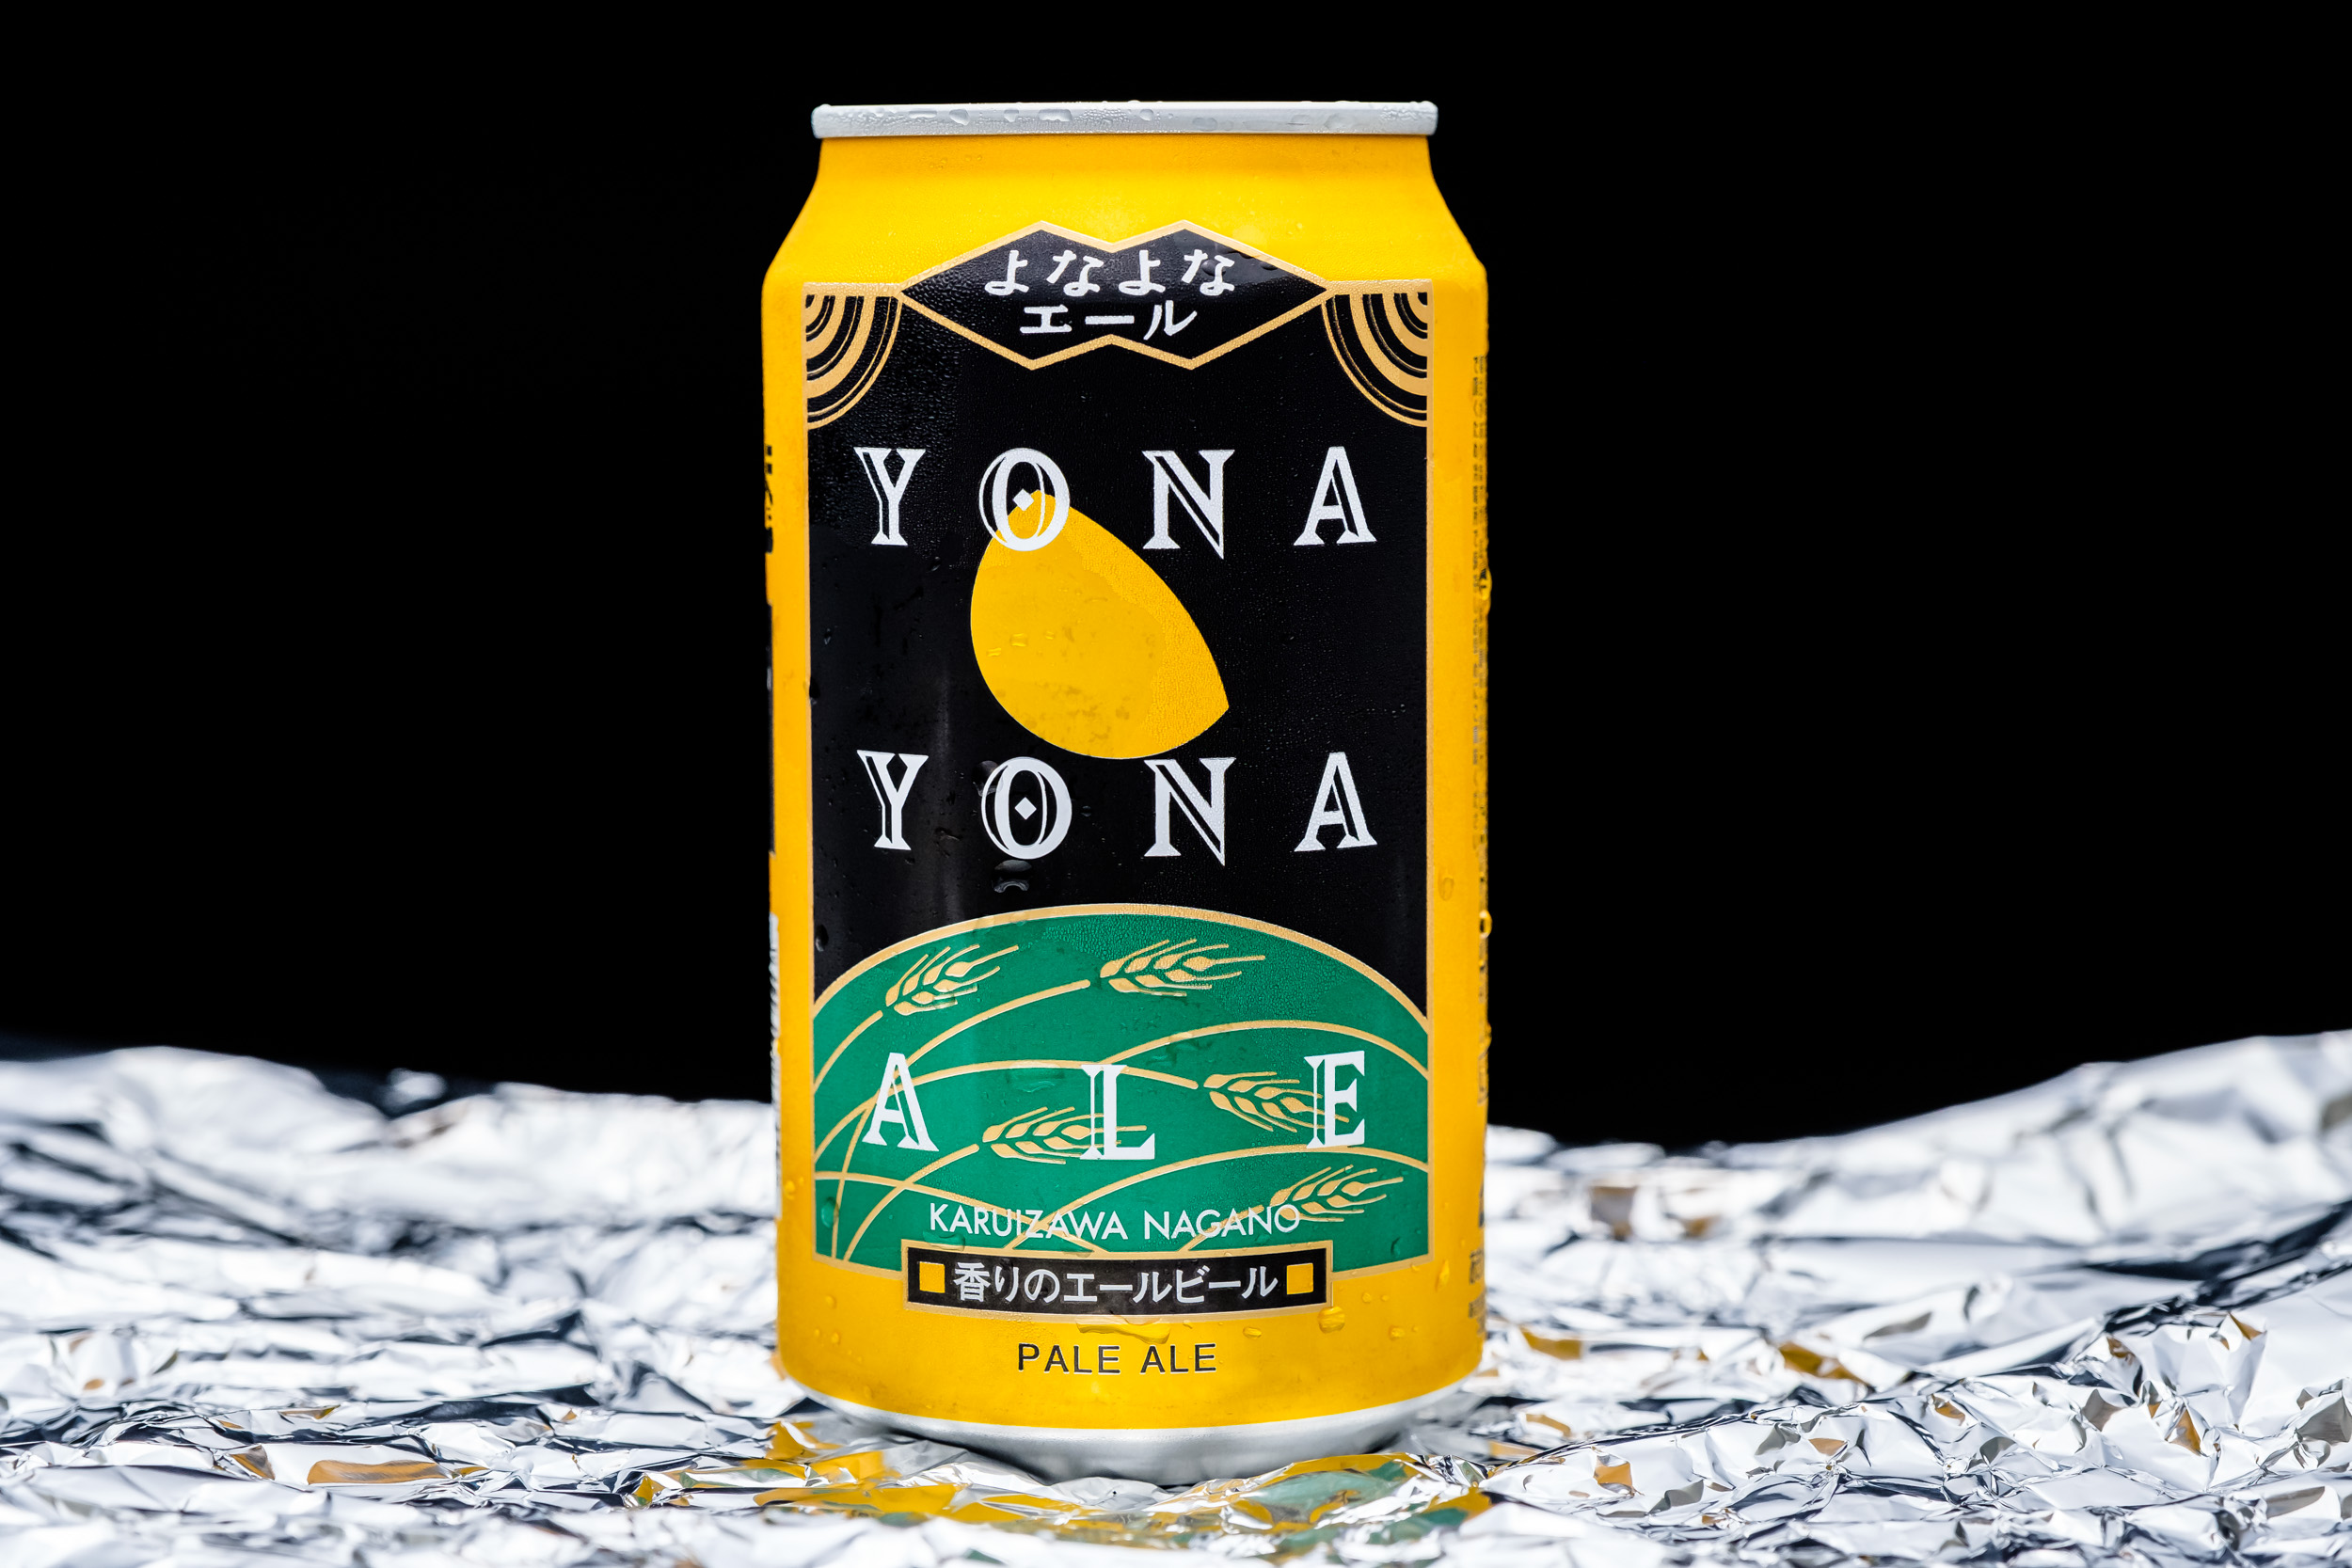 Yona Yona Ale - a great Japanese beer